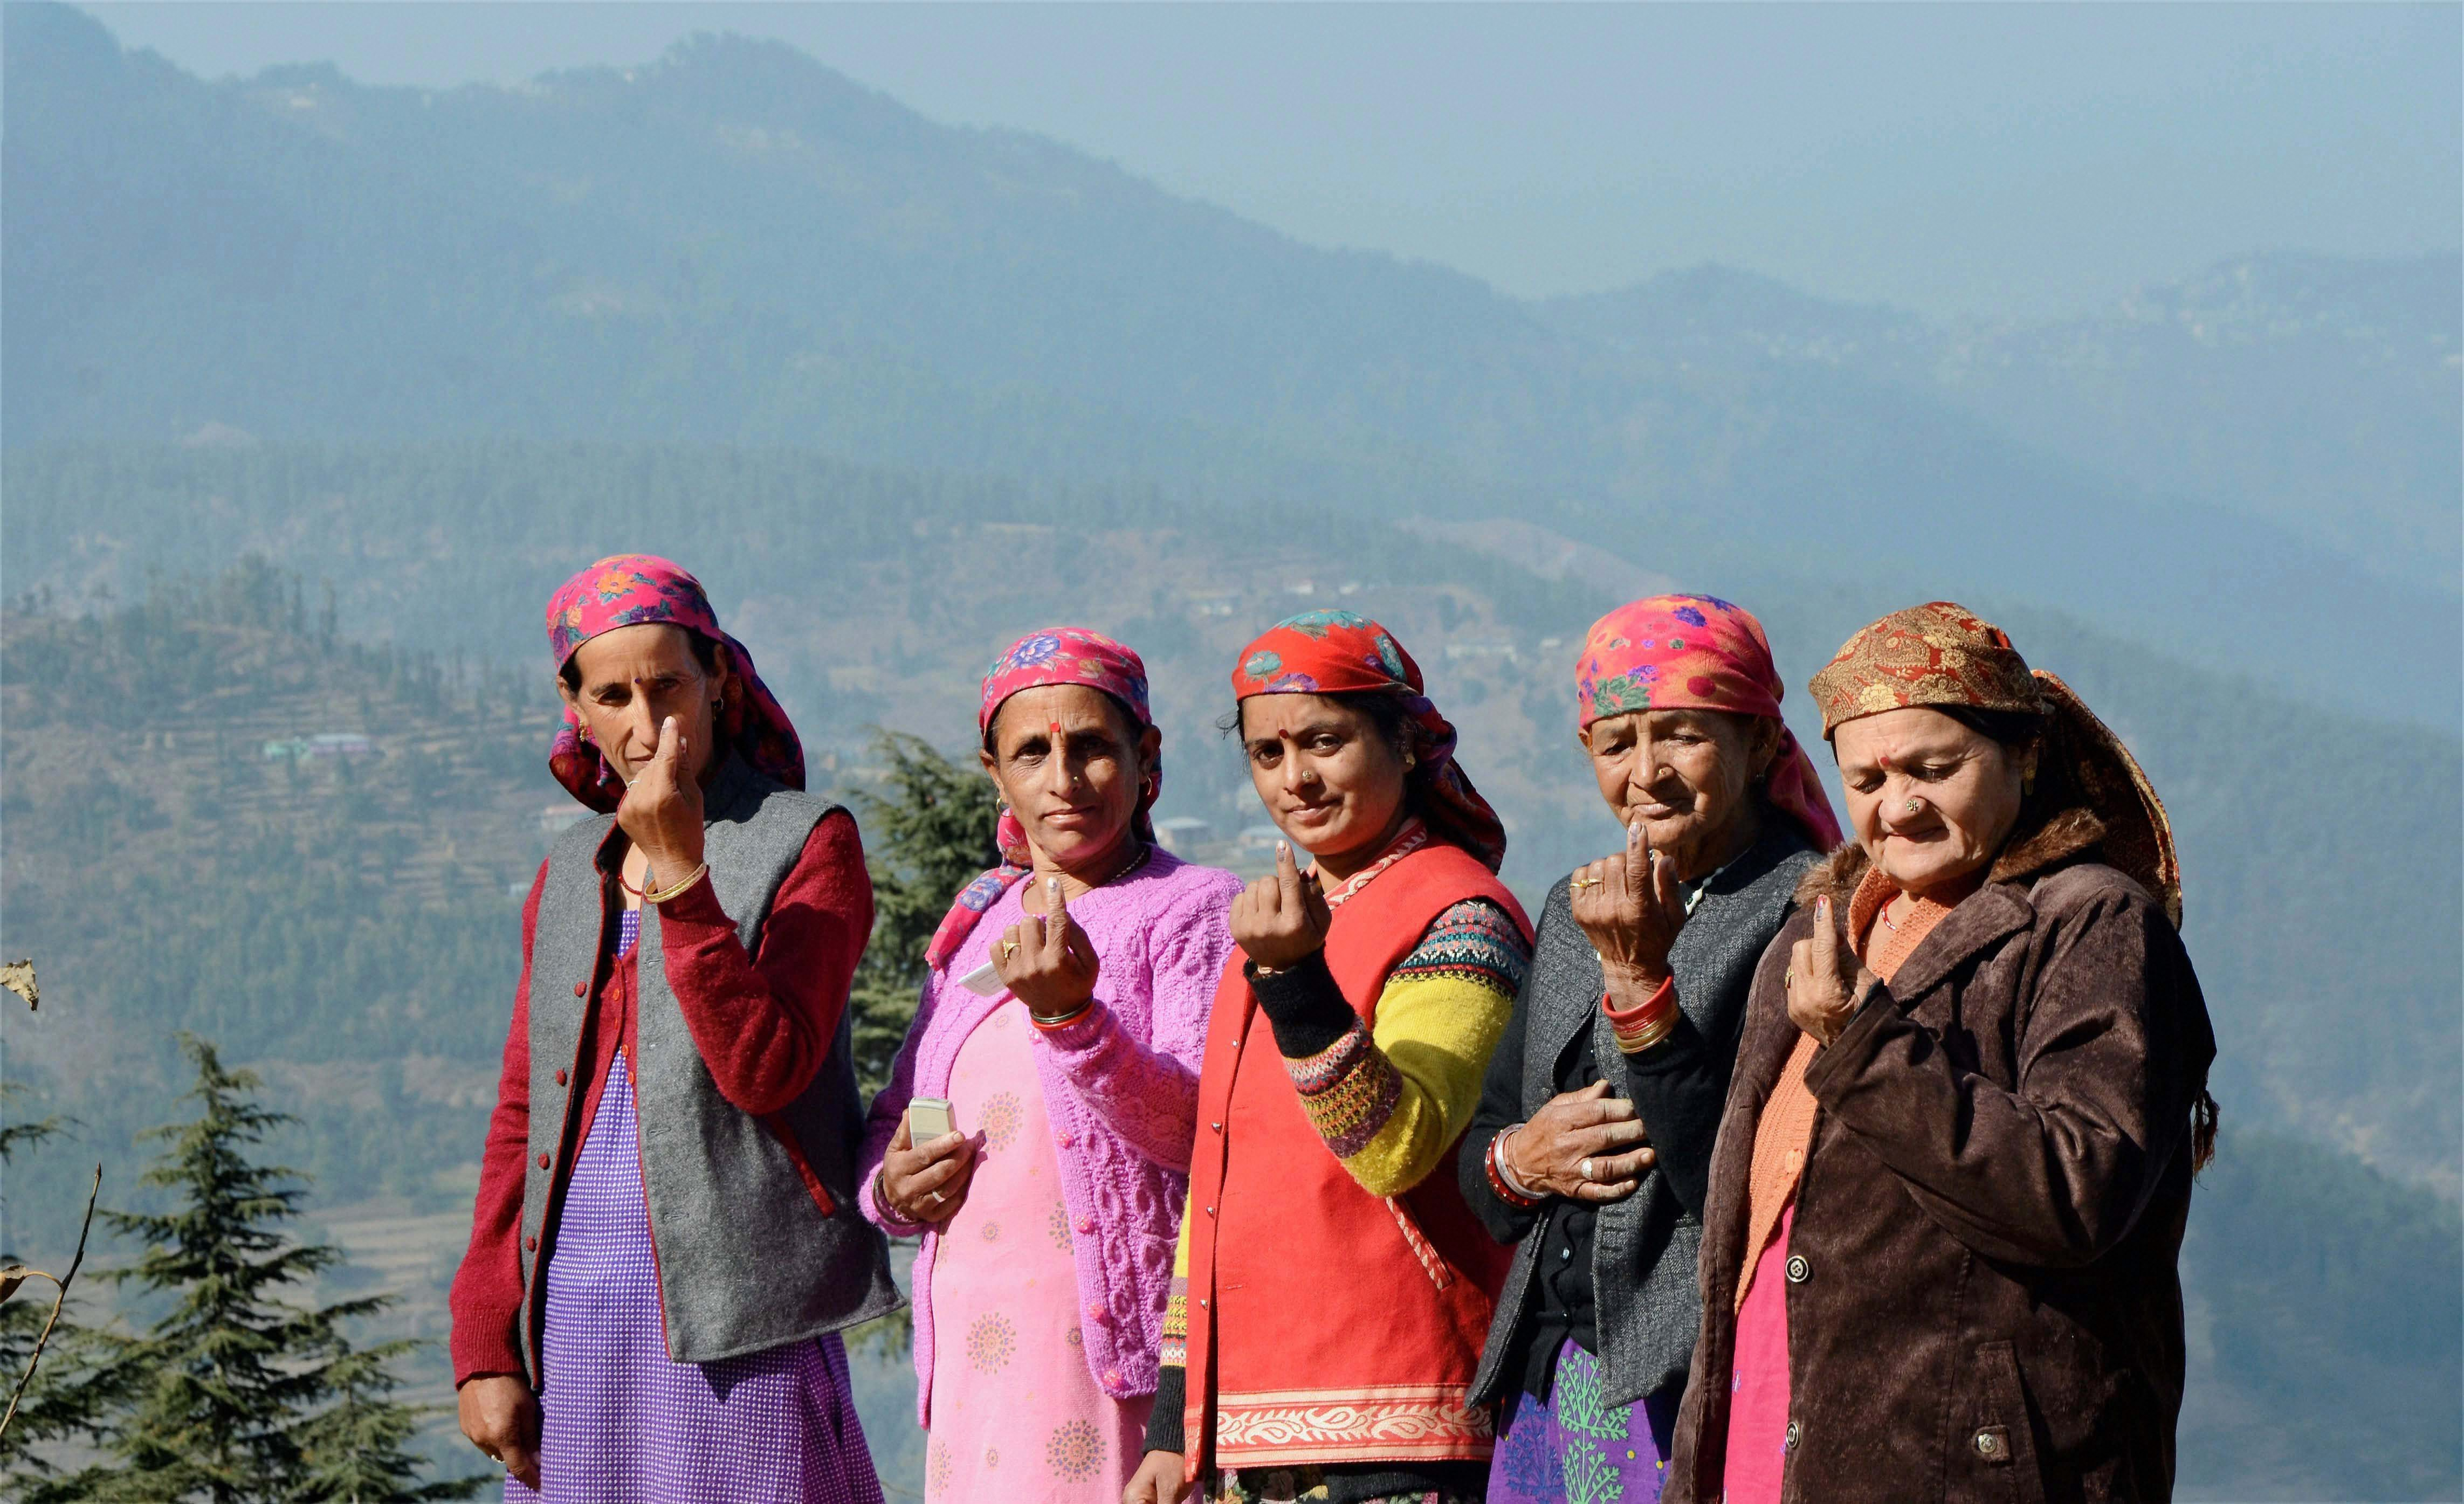 Shimla: A group of women show their inked finger after they cast their vote for the state's Assembly elections, in Shimla on Thursday. PTI Photo(PTI11_9_2017_000029A)